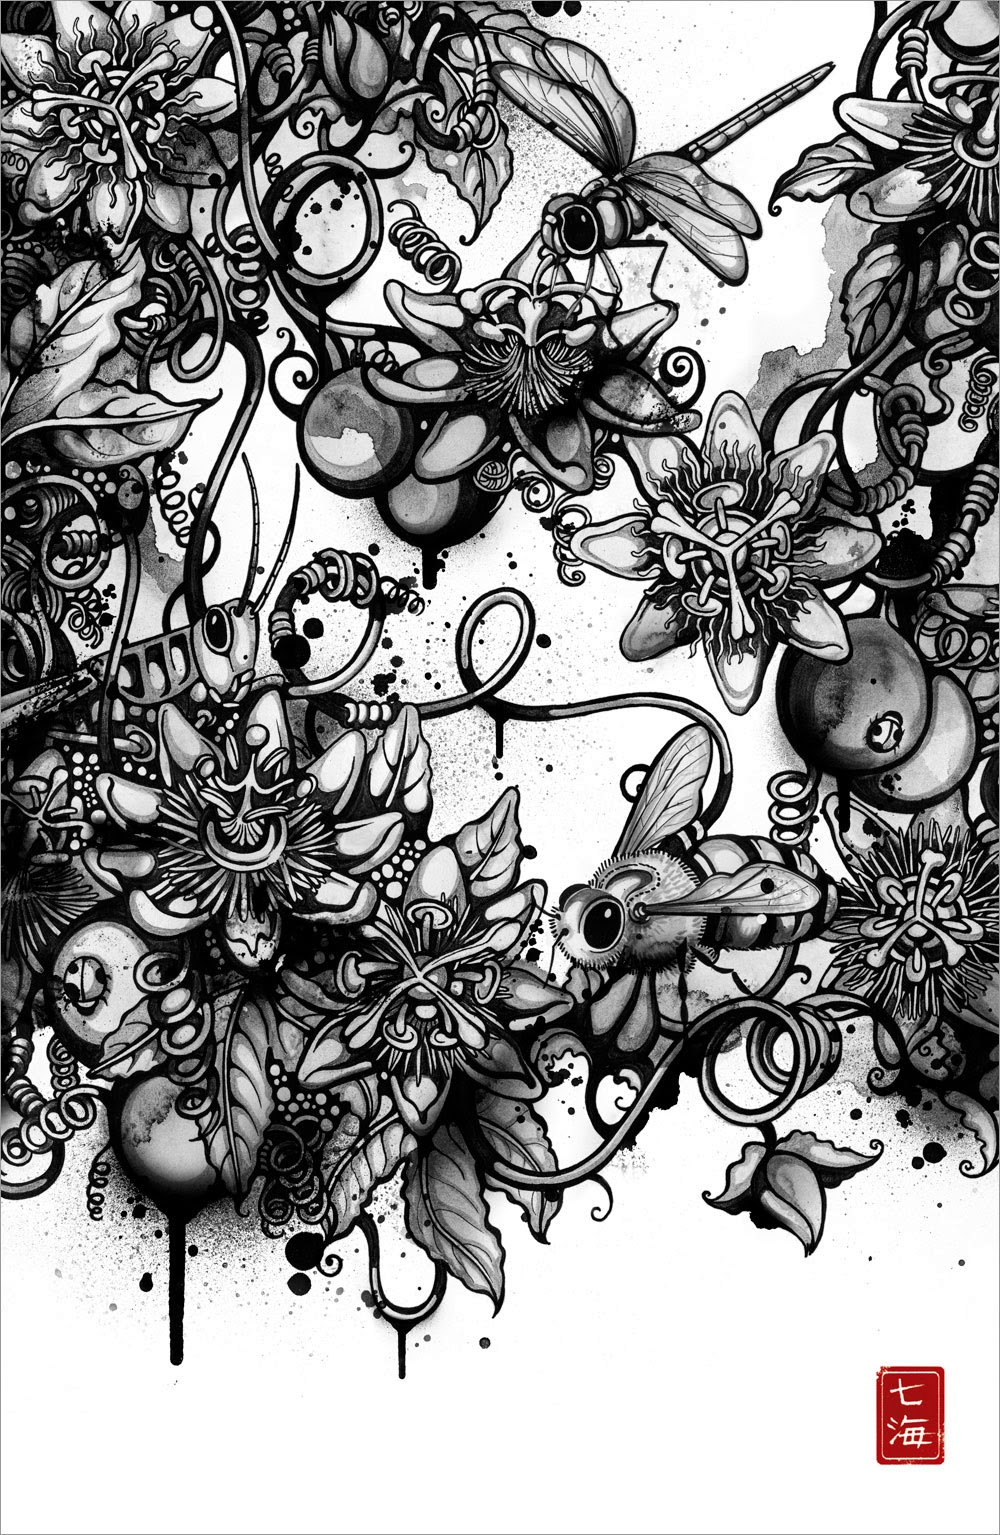 07-Inksects-Nanami-Cowdroy-Splashes-of-Ink-Drawings-www-designstack-co